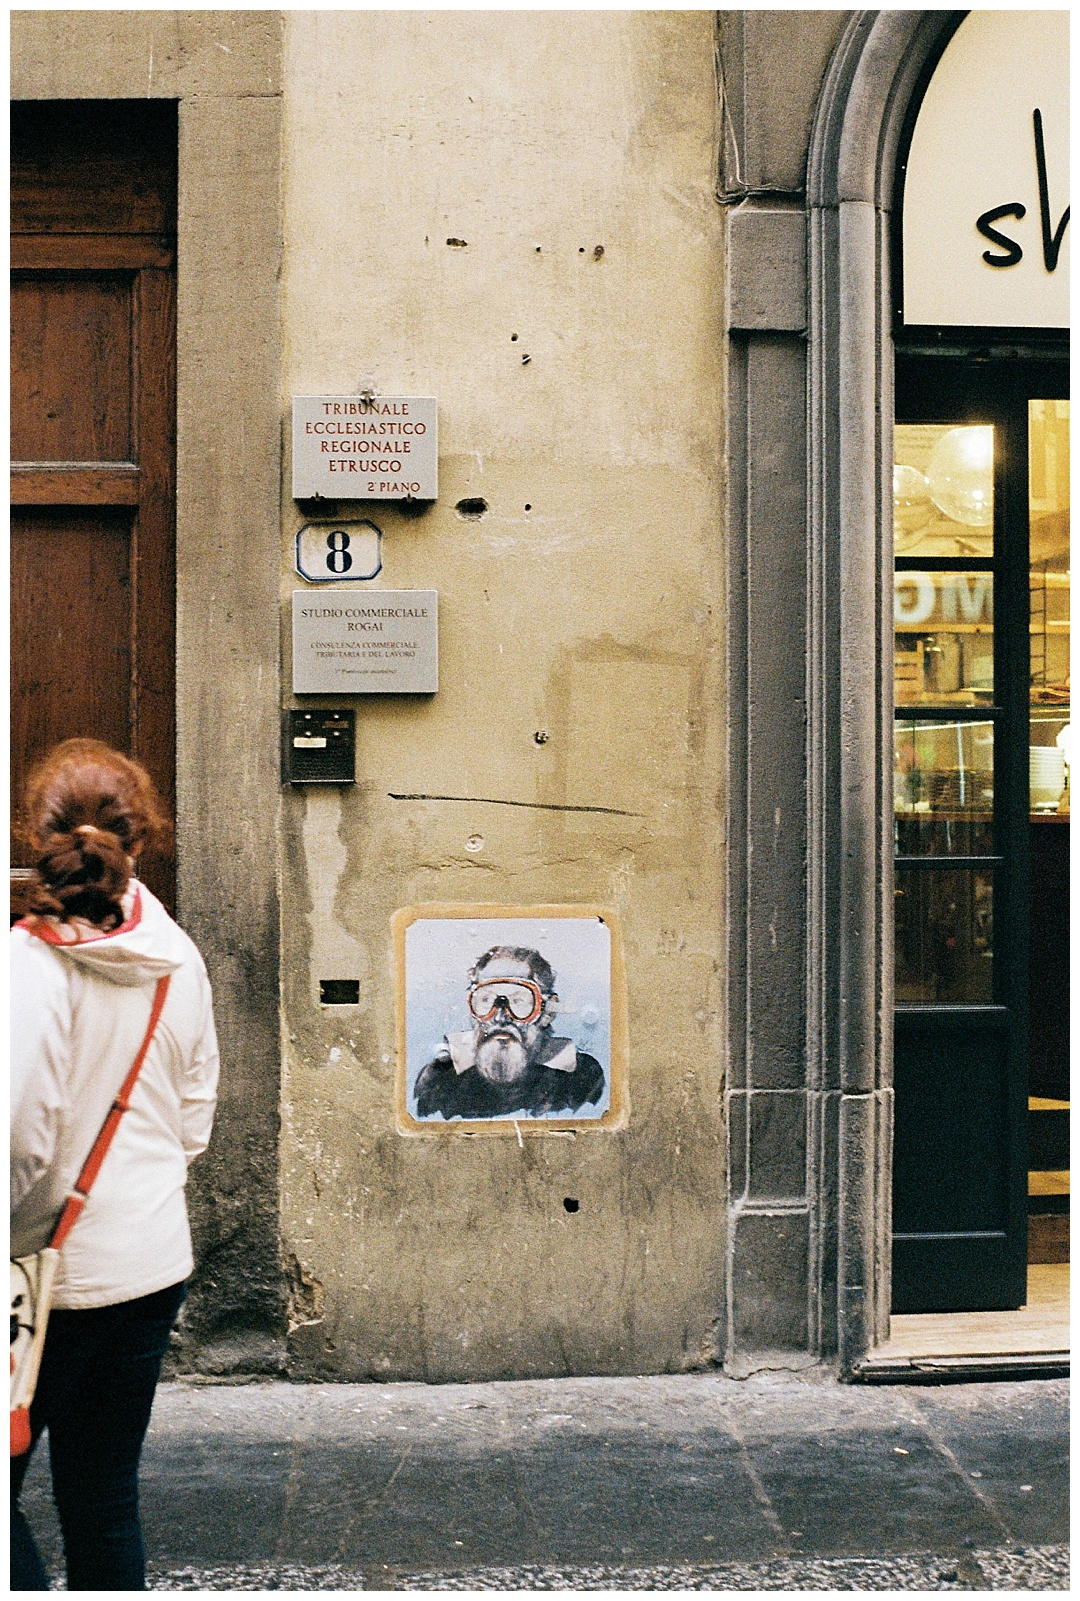 We_Can _Be_Heroes_alternative_wedding_photographer_Rome_florence_Film_0019